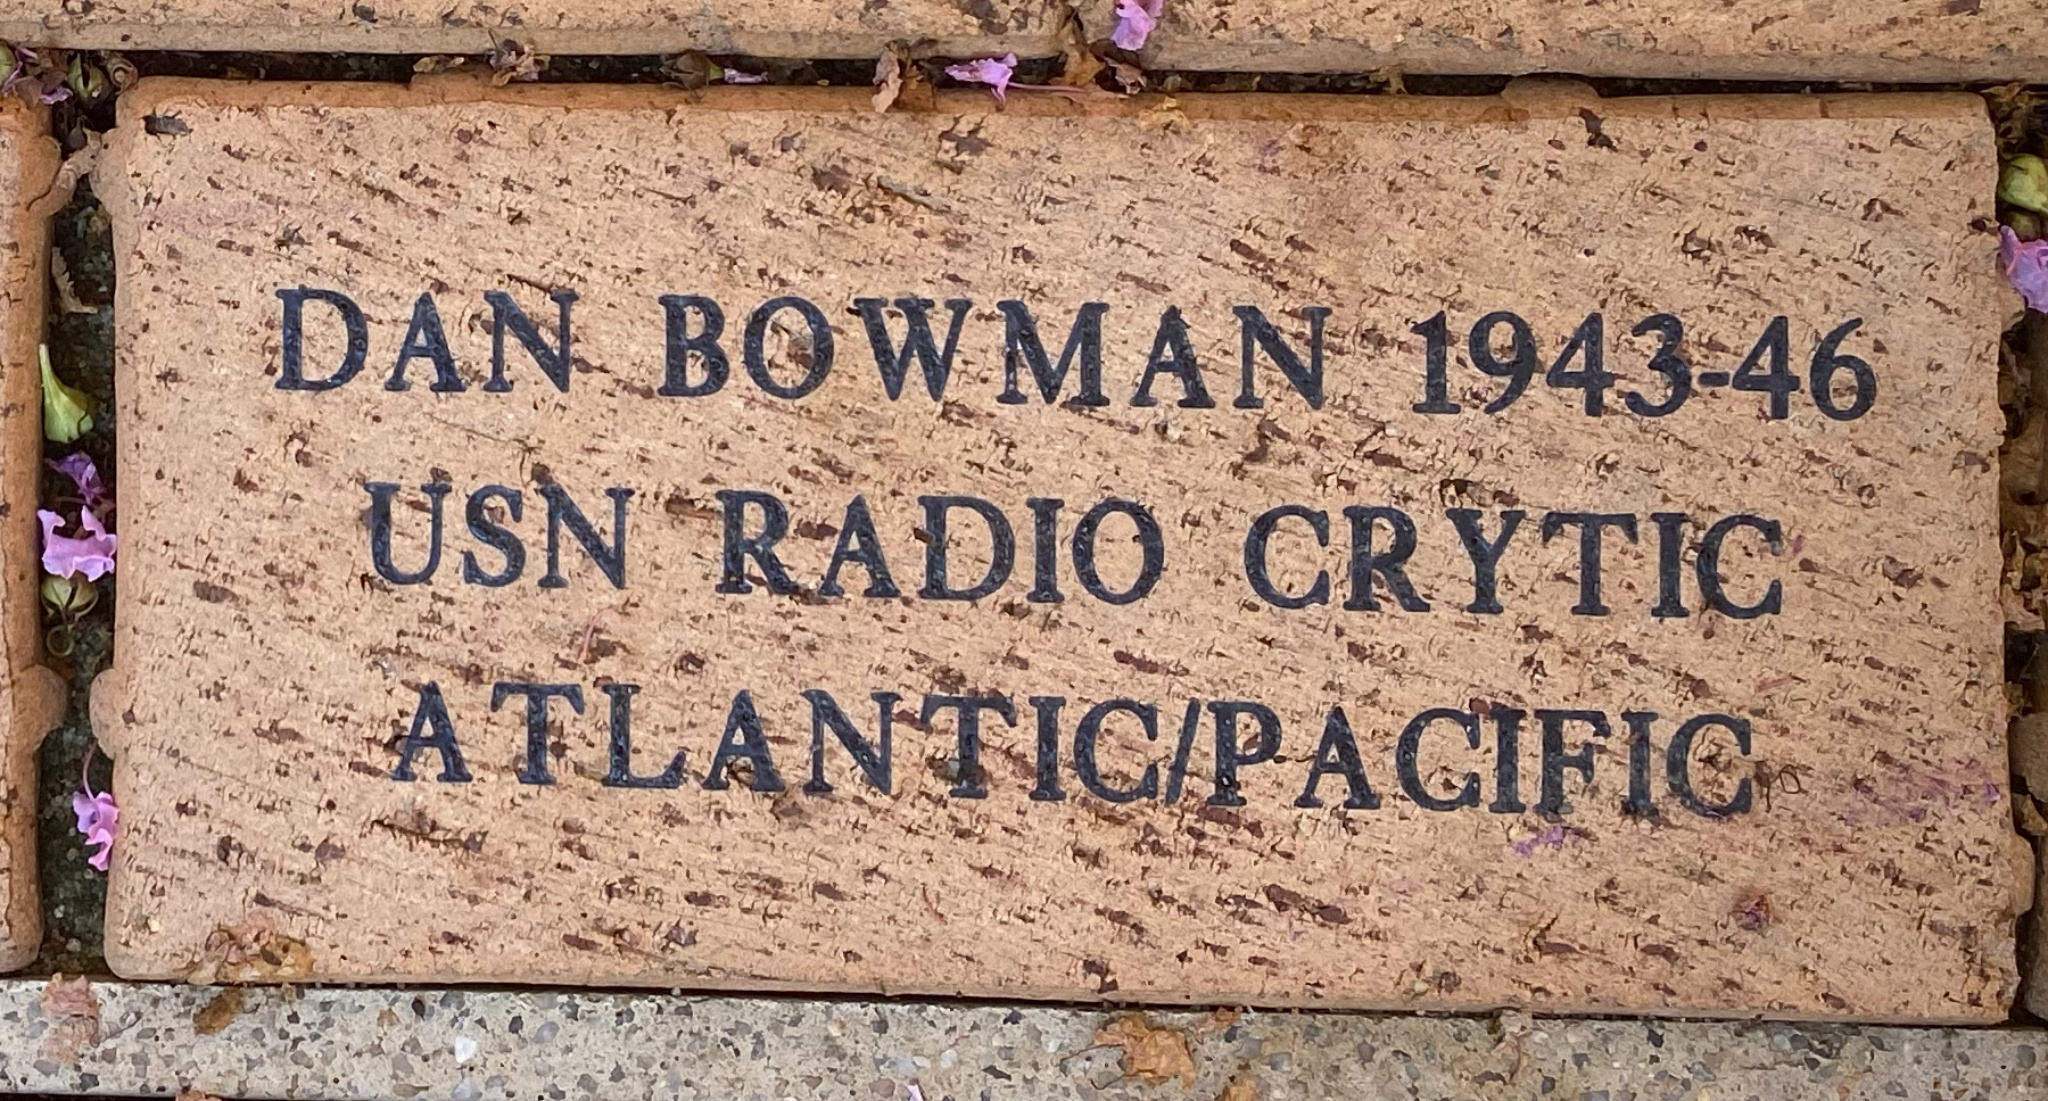 DAN BOWMAN 1943-46 USN RADIO CRYTIC ATLANTIC/PACIFIC